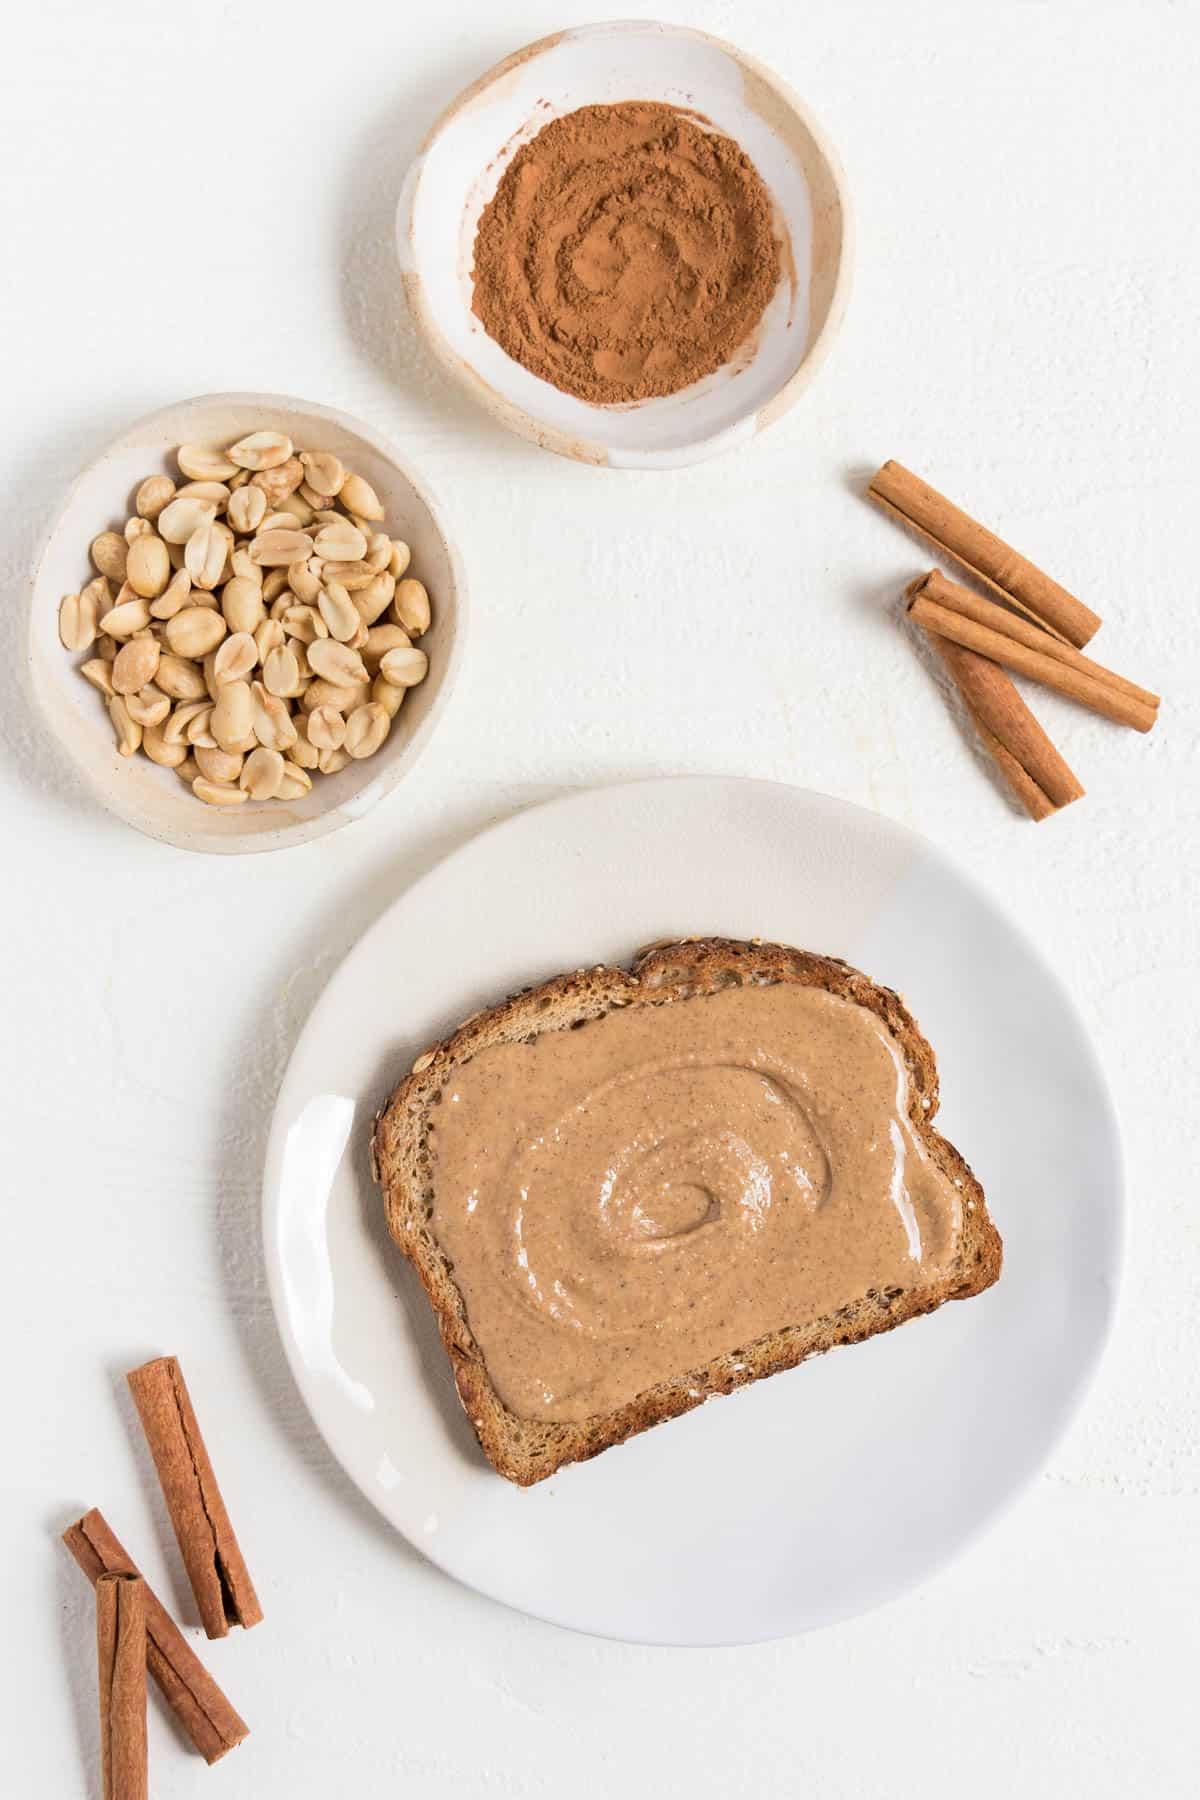 pumpkin spice peanut butter on top of toast with cinnamon and peanuts